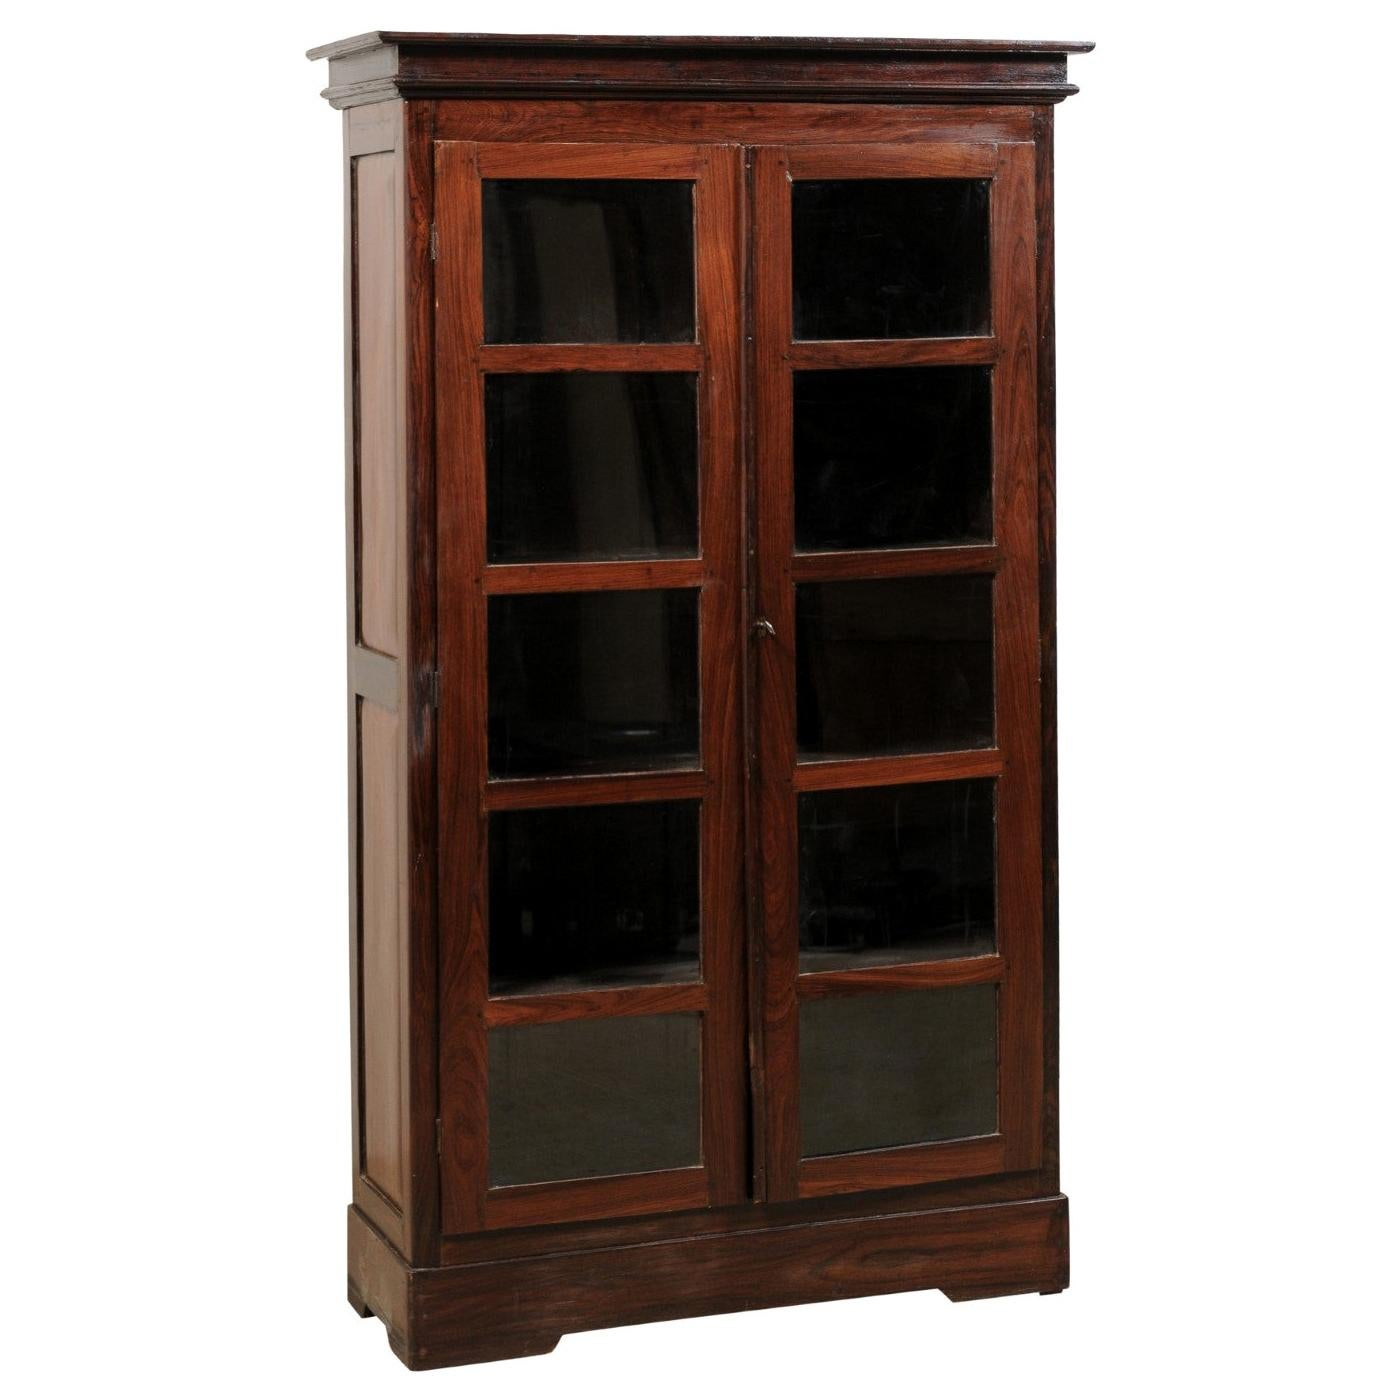 Antique British Colonial Rosewood Cabinet with Glass Panel Doors